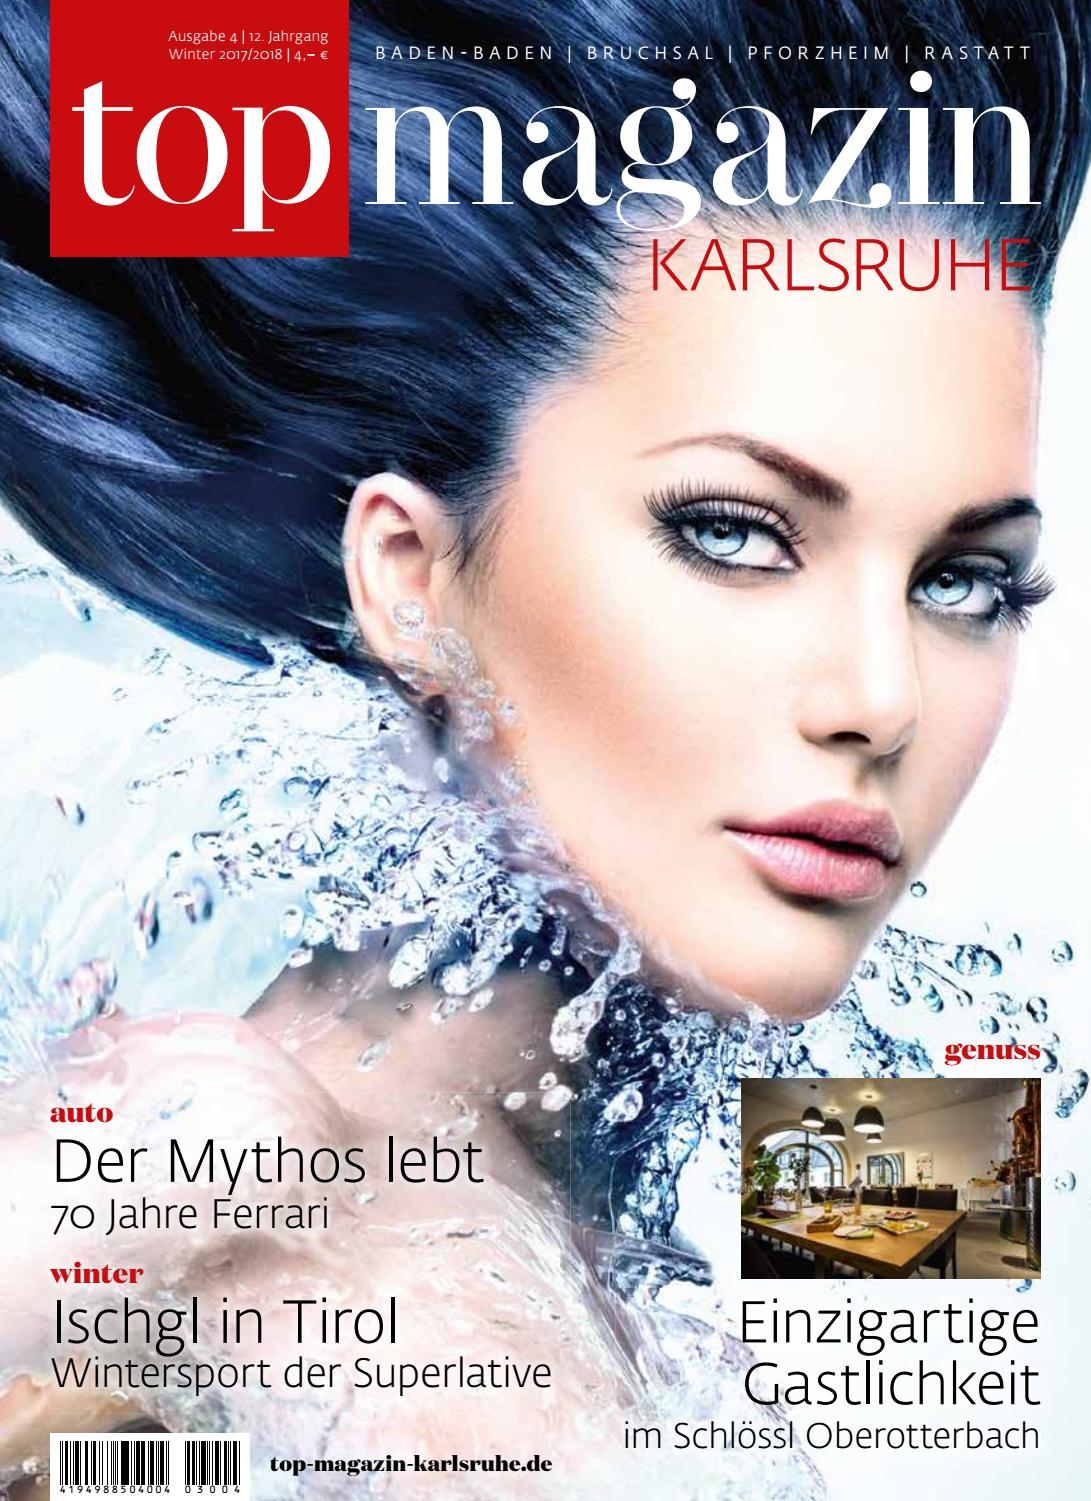 Top Magazin Karlsruhe Winter 2017 by Top Magazin - issuu